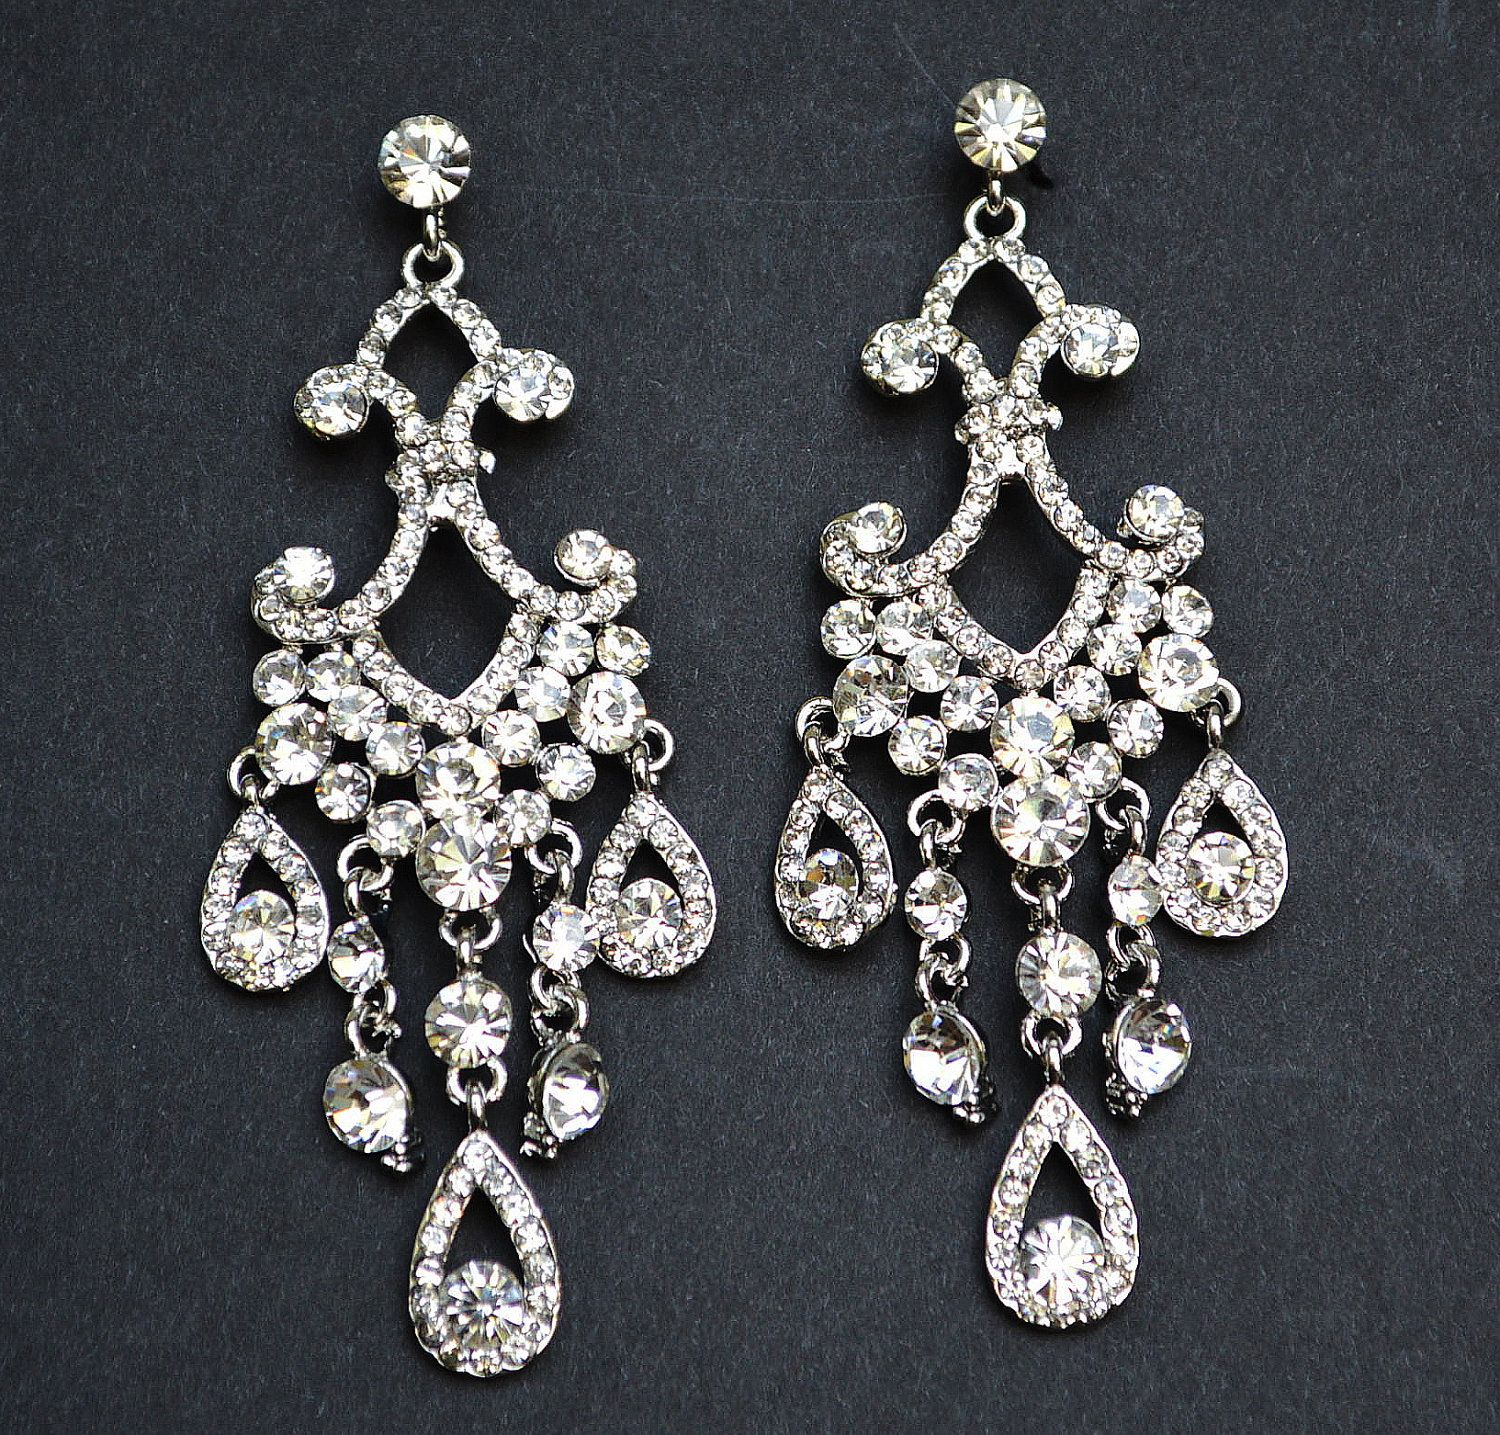 Vintage wedding earrings bridal earrings classic chandelier vintage wedding earrings bridal earrings classic chandelier earrings rhinestone earrings 3000 arubaitofo Gallery